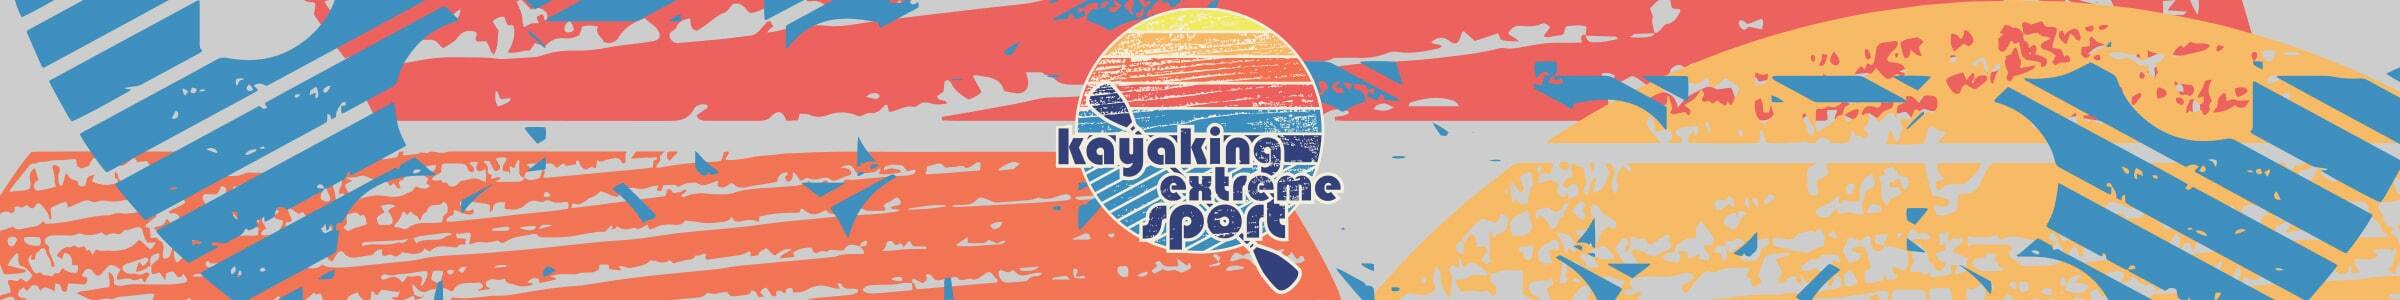 Category_Teaser_Header_Kayak_2400x300